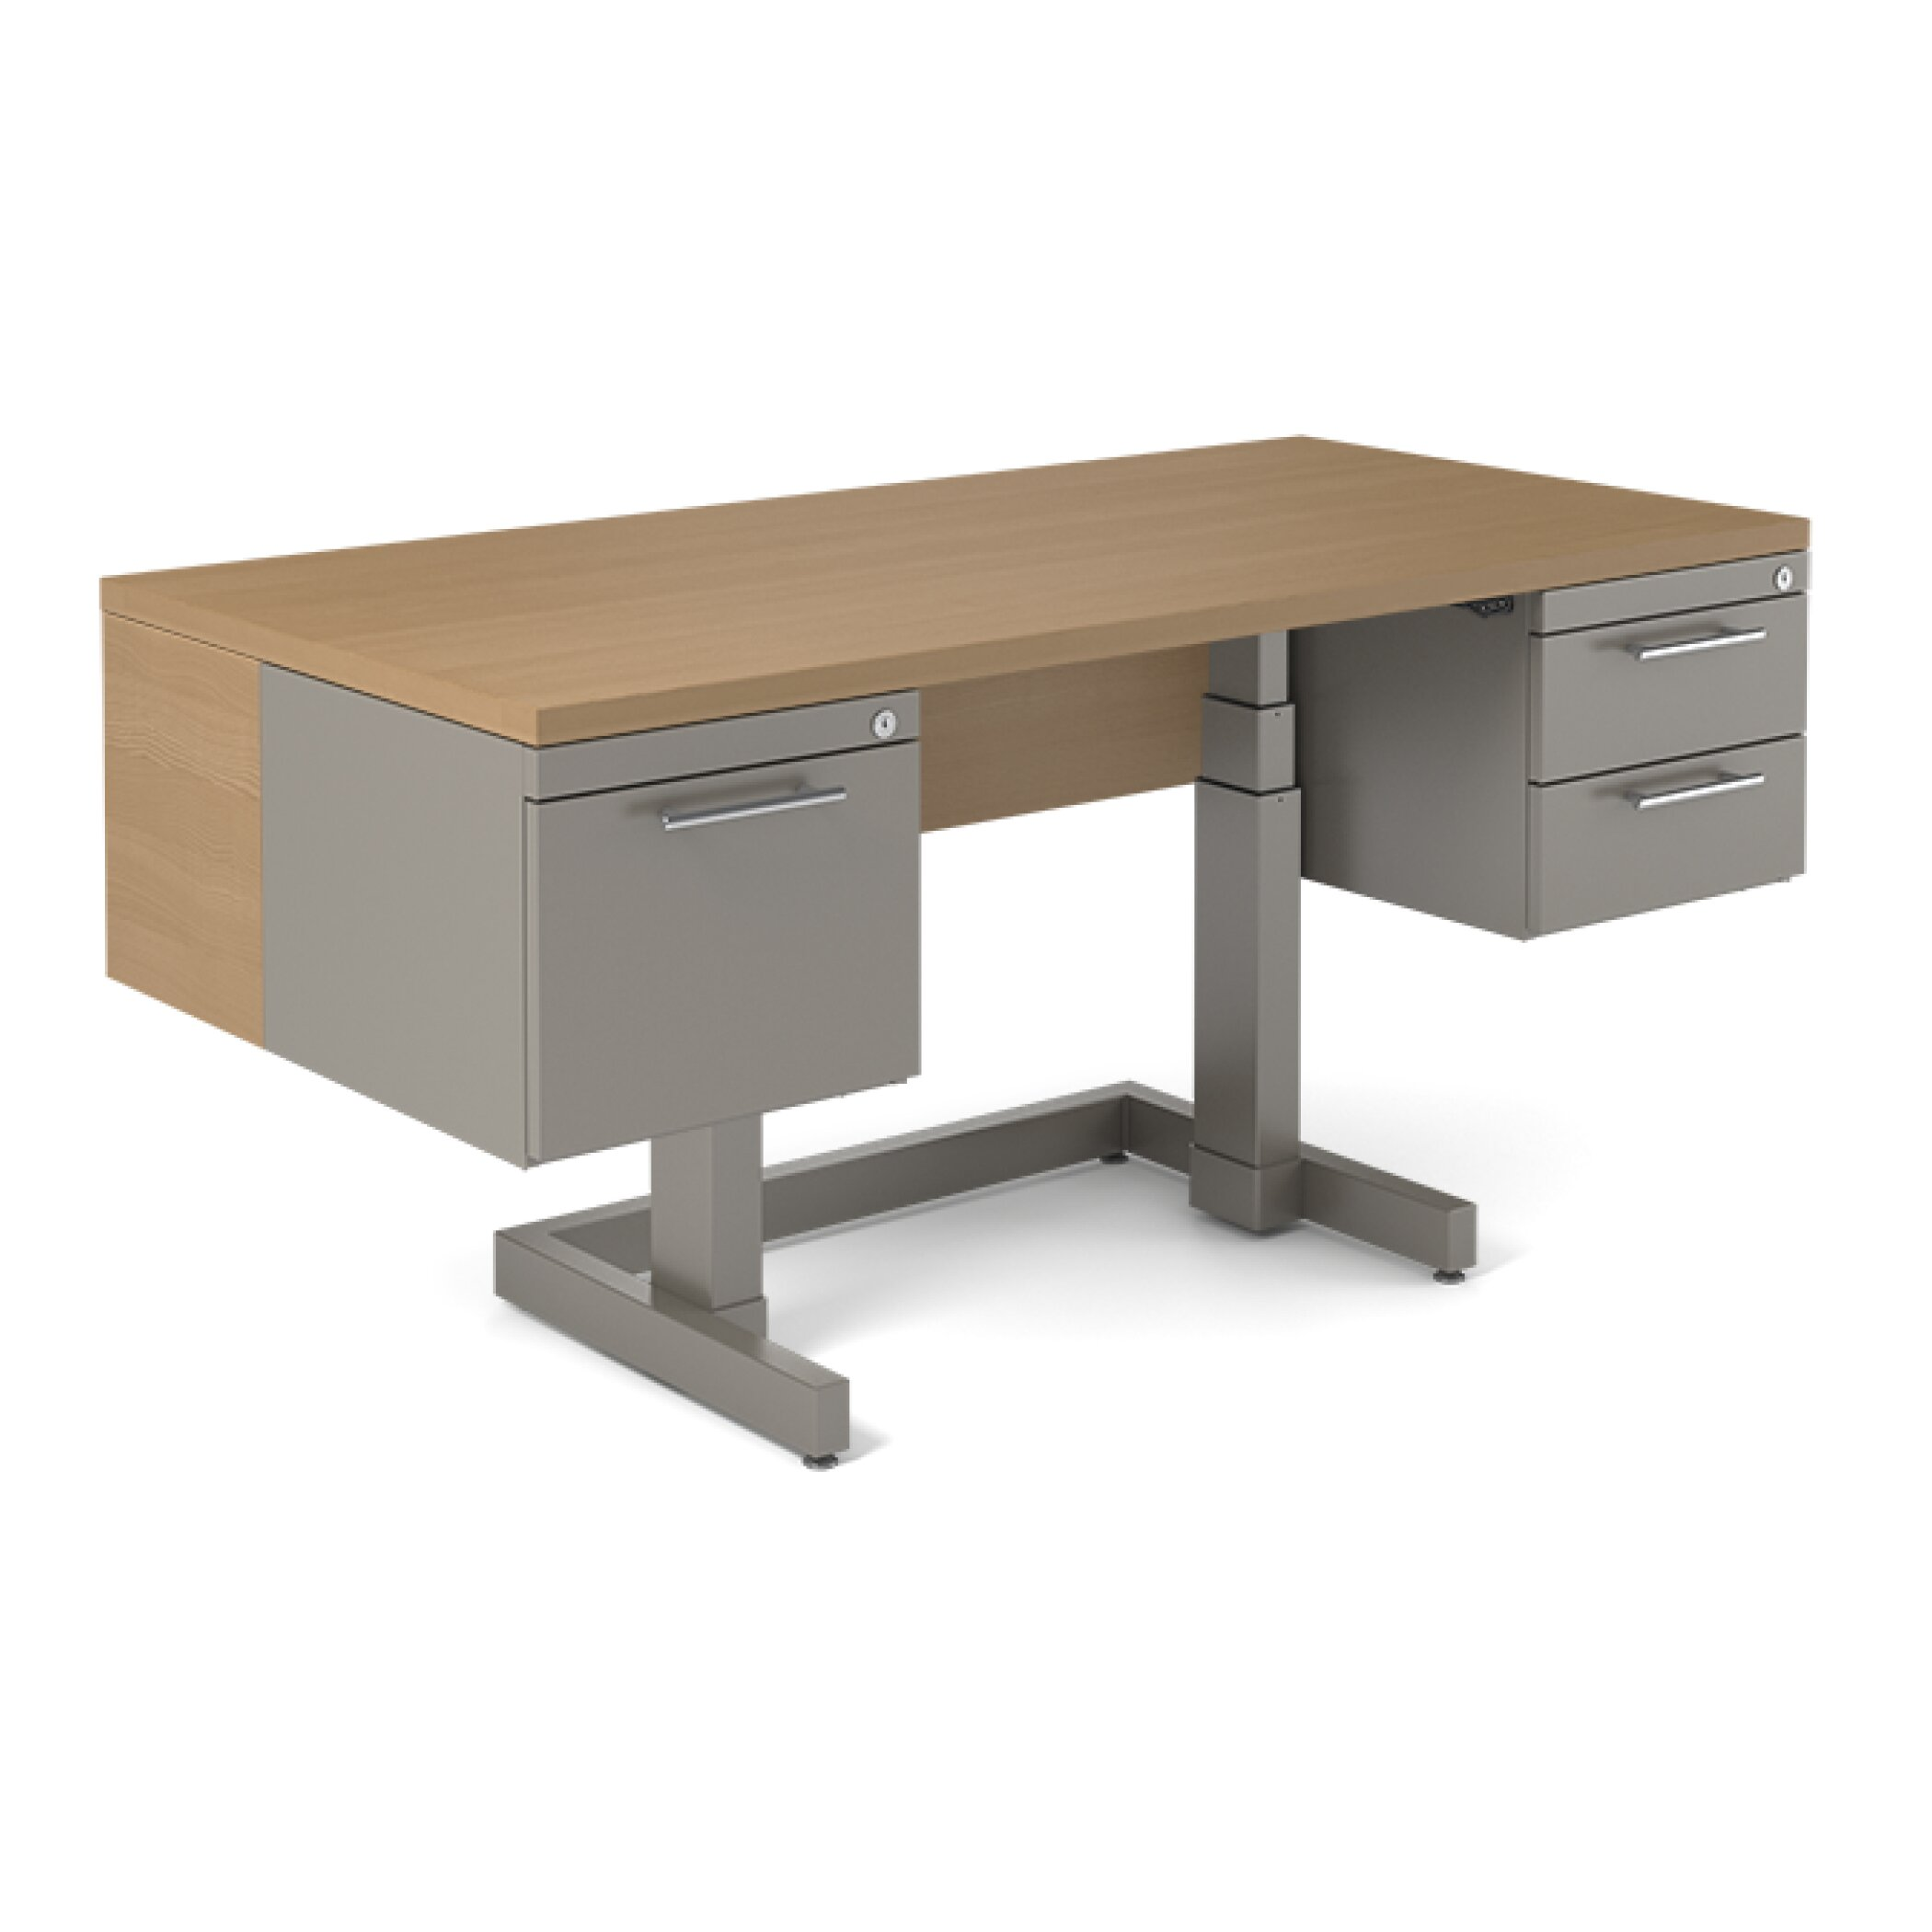 BOLD Furniture One Standing Desk with Metal Leg amp Reviews